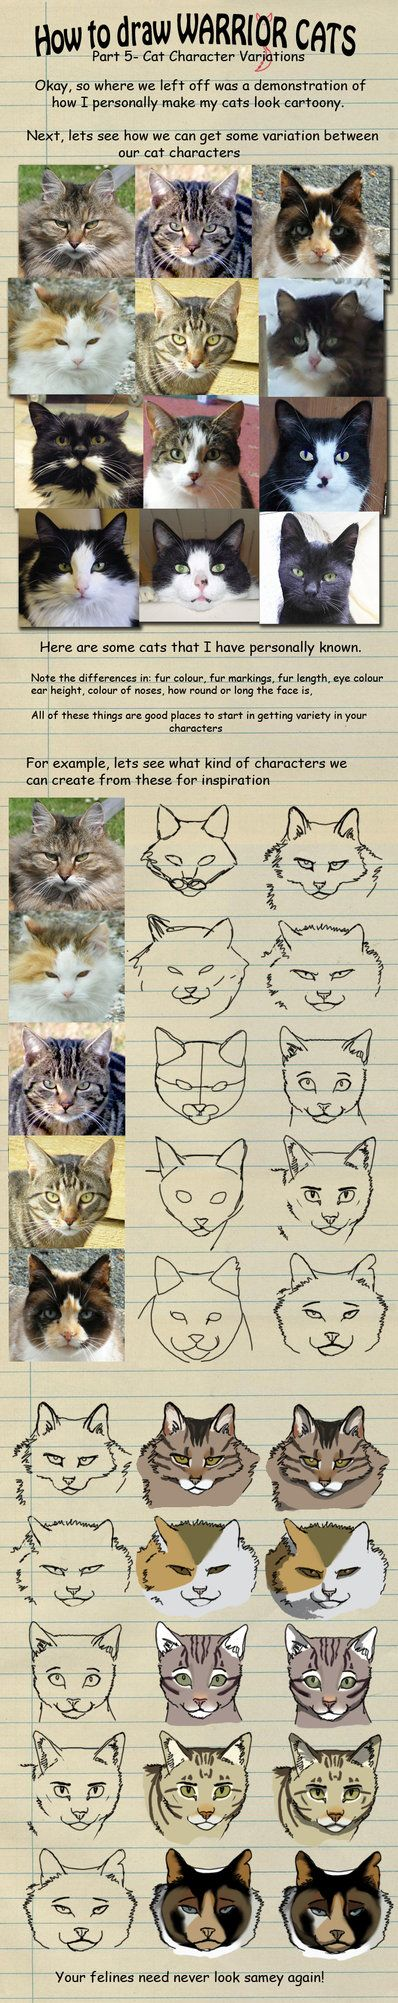 How to draw Warrior Cats pt 5 by heylorlass on deviantART